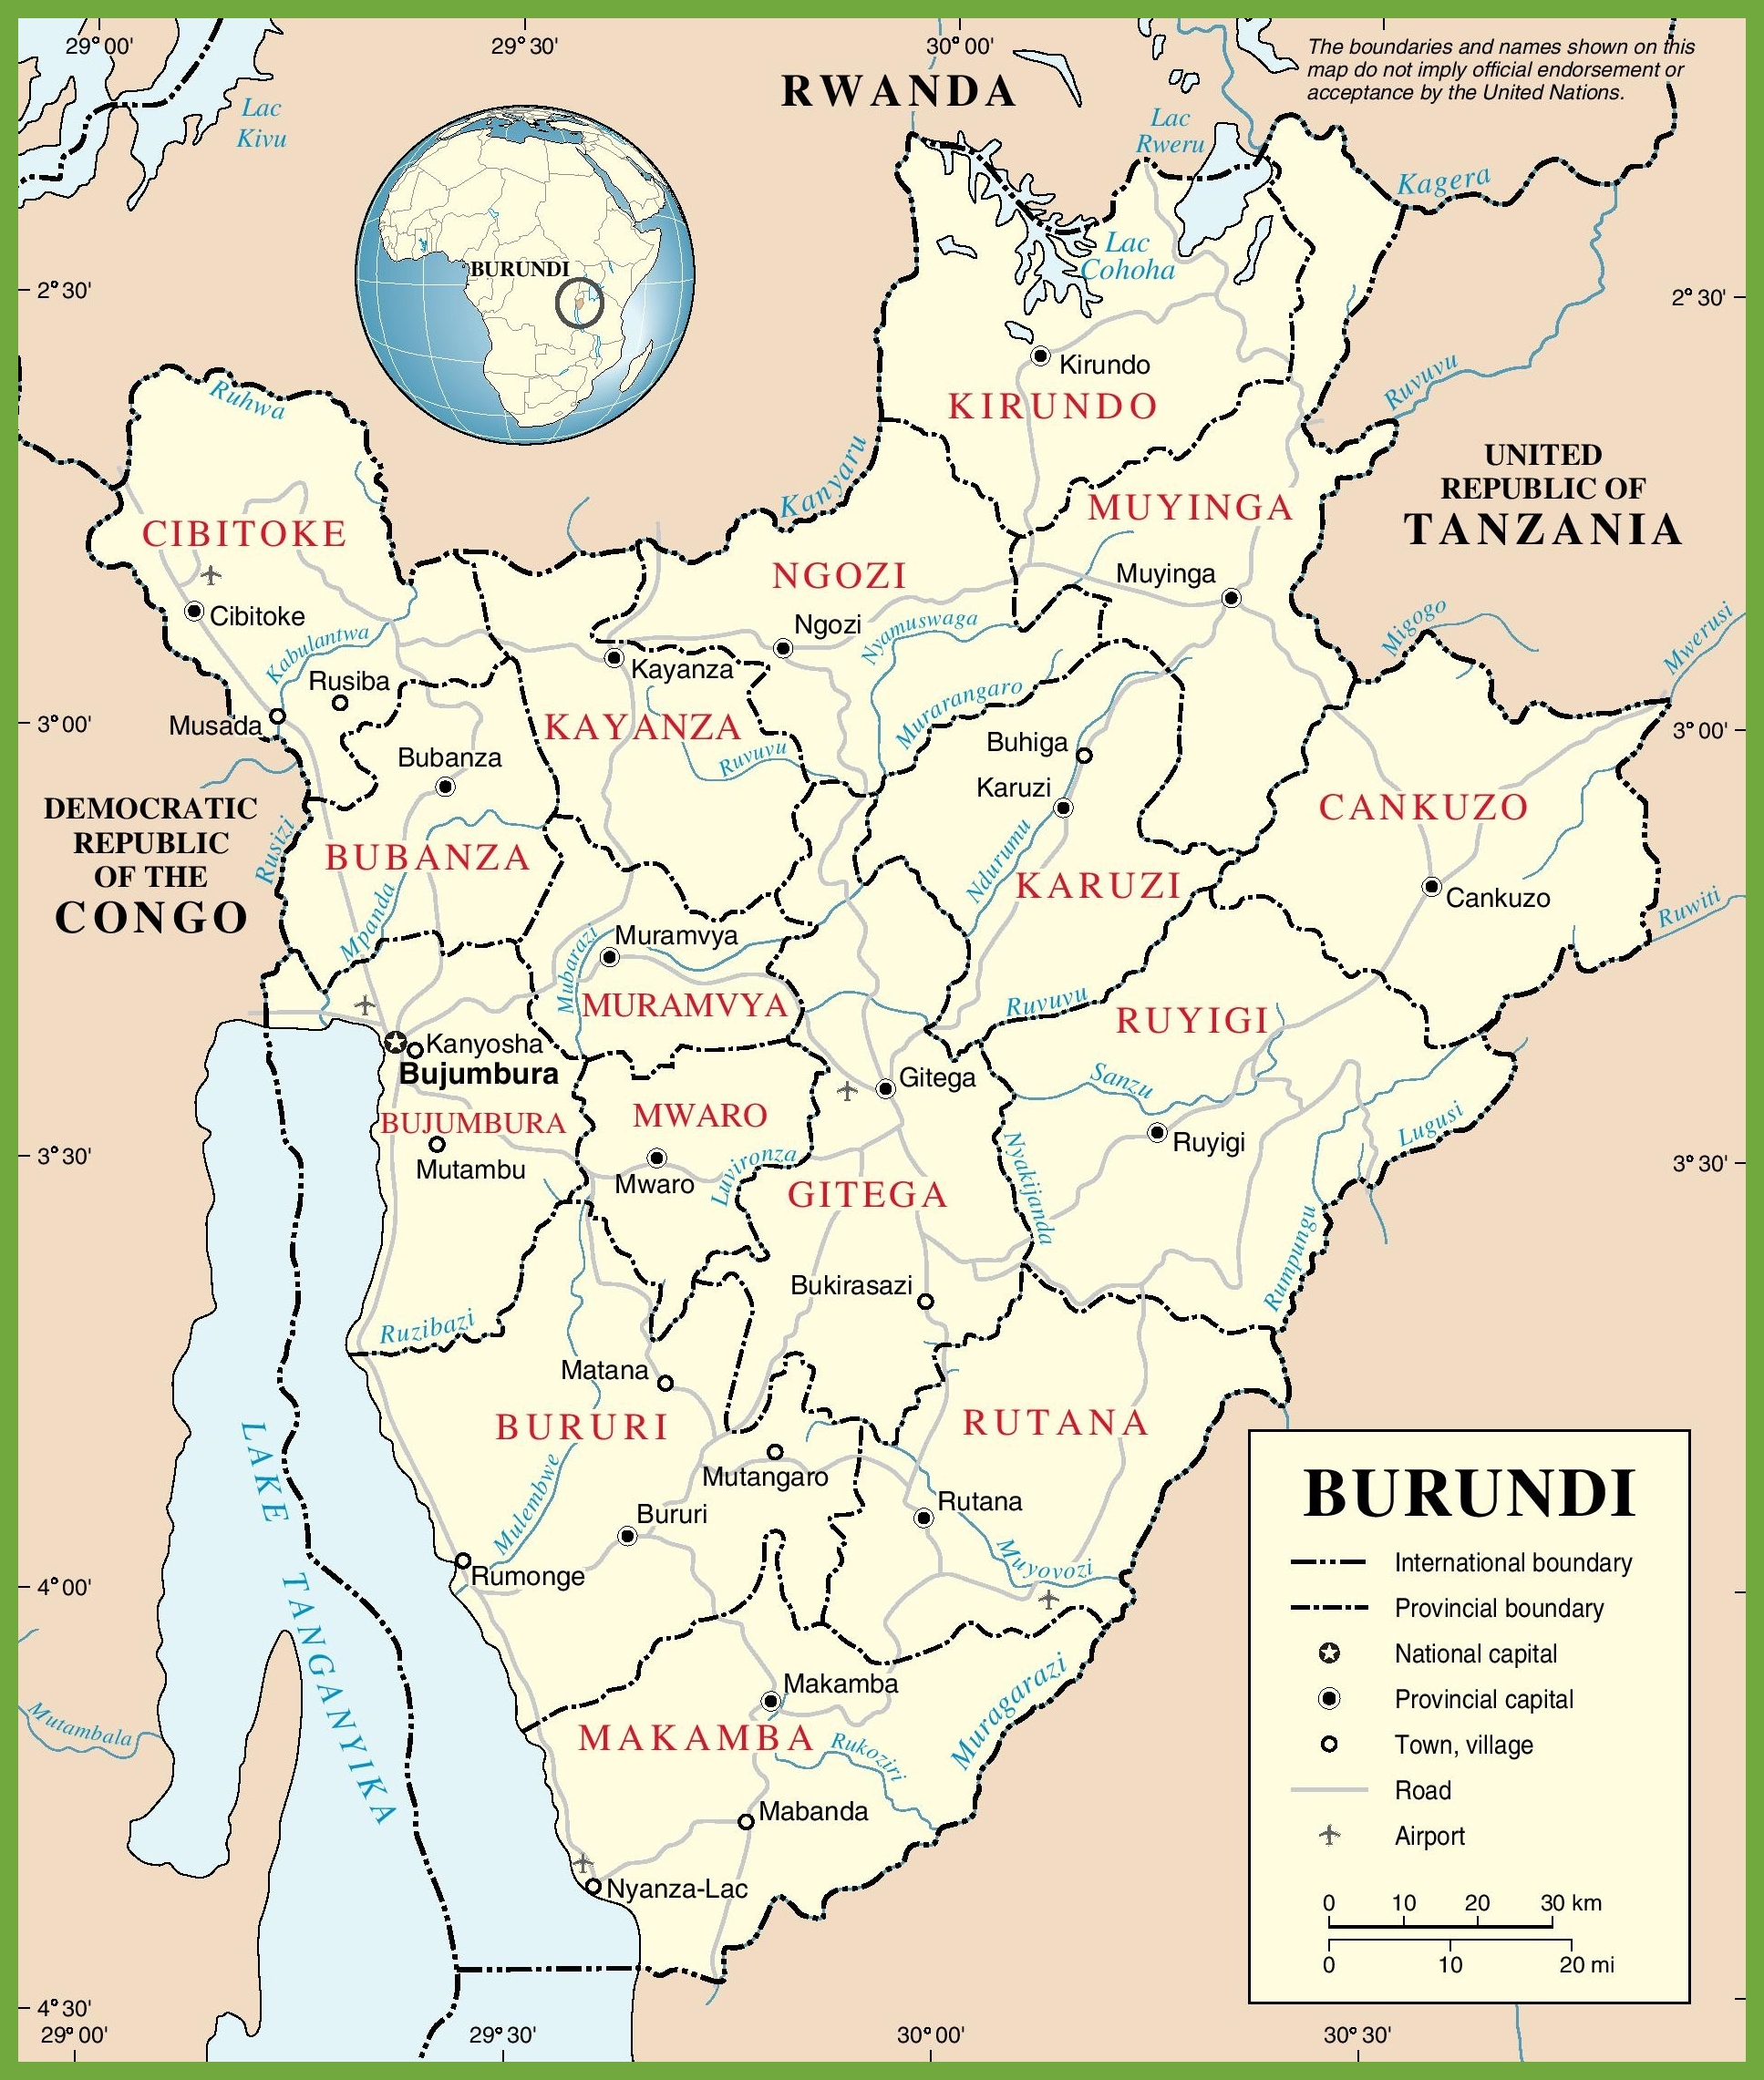 Large detailed road map of Burundi on road map suriname, road map spain, road map west africa, road map southern africa, road map lebanon, road map hungary, road map martinique, road map kenya, road map anguilla, road map zimbabwe, road map bosnia and herzegovina, road map lesotho, road map cameroon, road map congo, road map ethiopia, road map italy, road map guam, road map vatican city, road map maputo, road map mali,